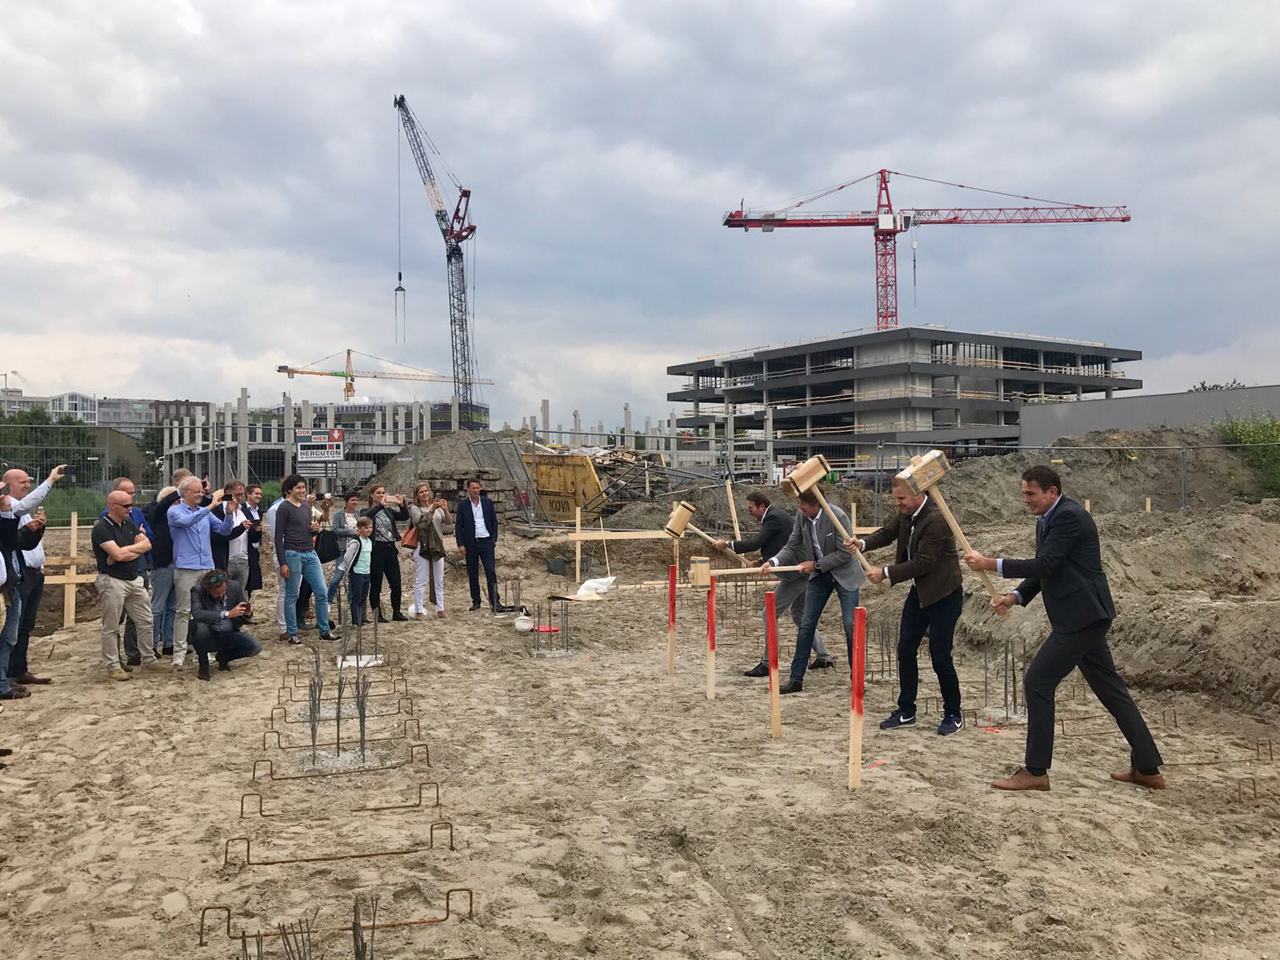 Ground breaking ceremony for Salt, a 3,700m2 office block for creatives located in Amsterdam